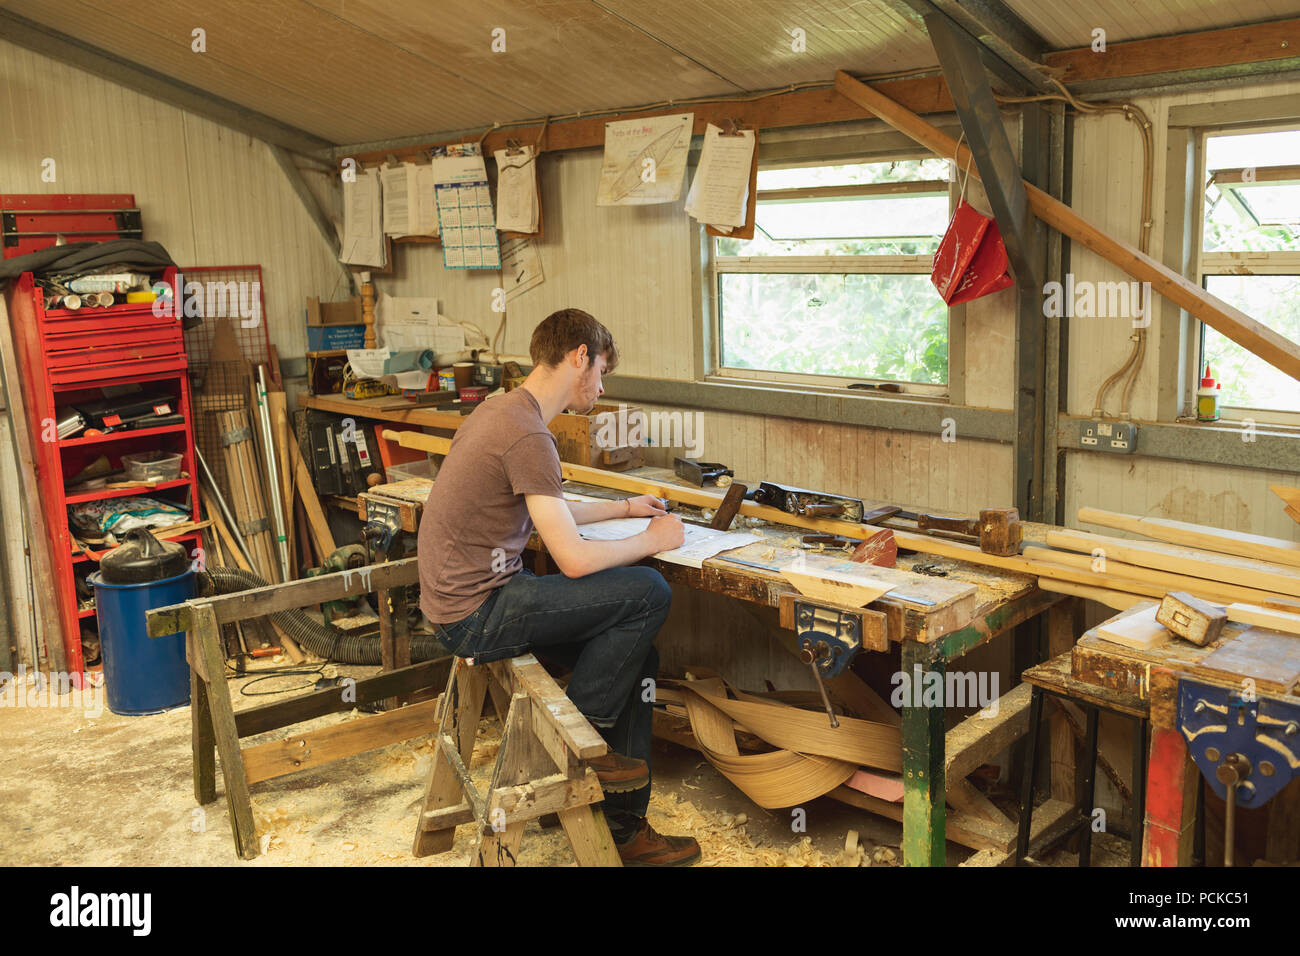 Male carpenter working in workshop - Stock Image